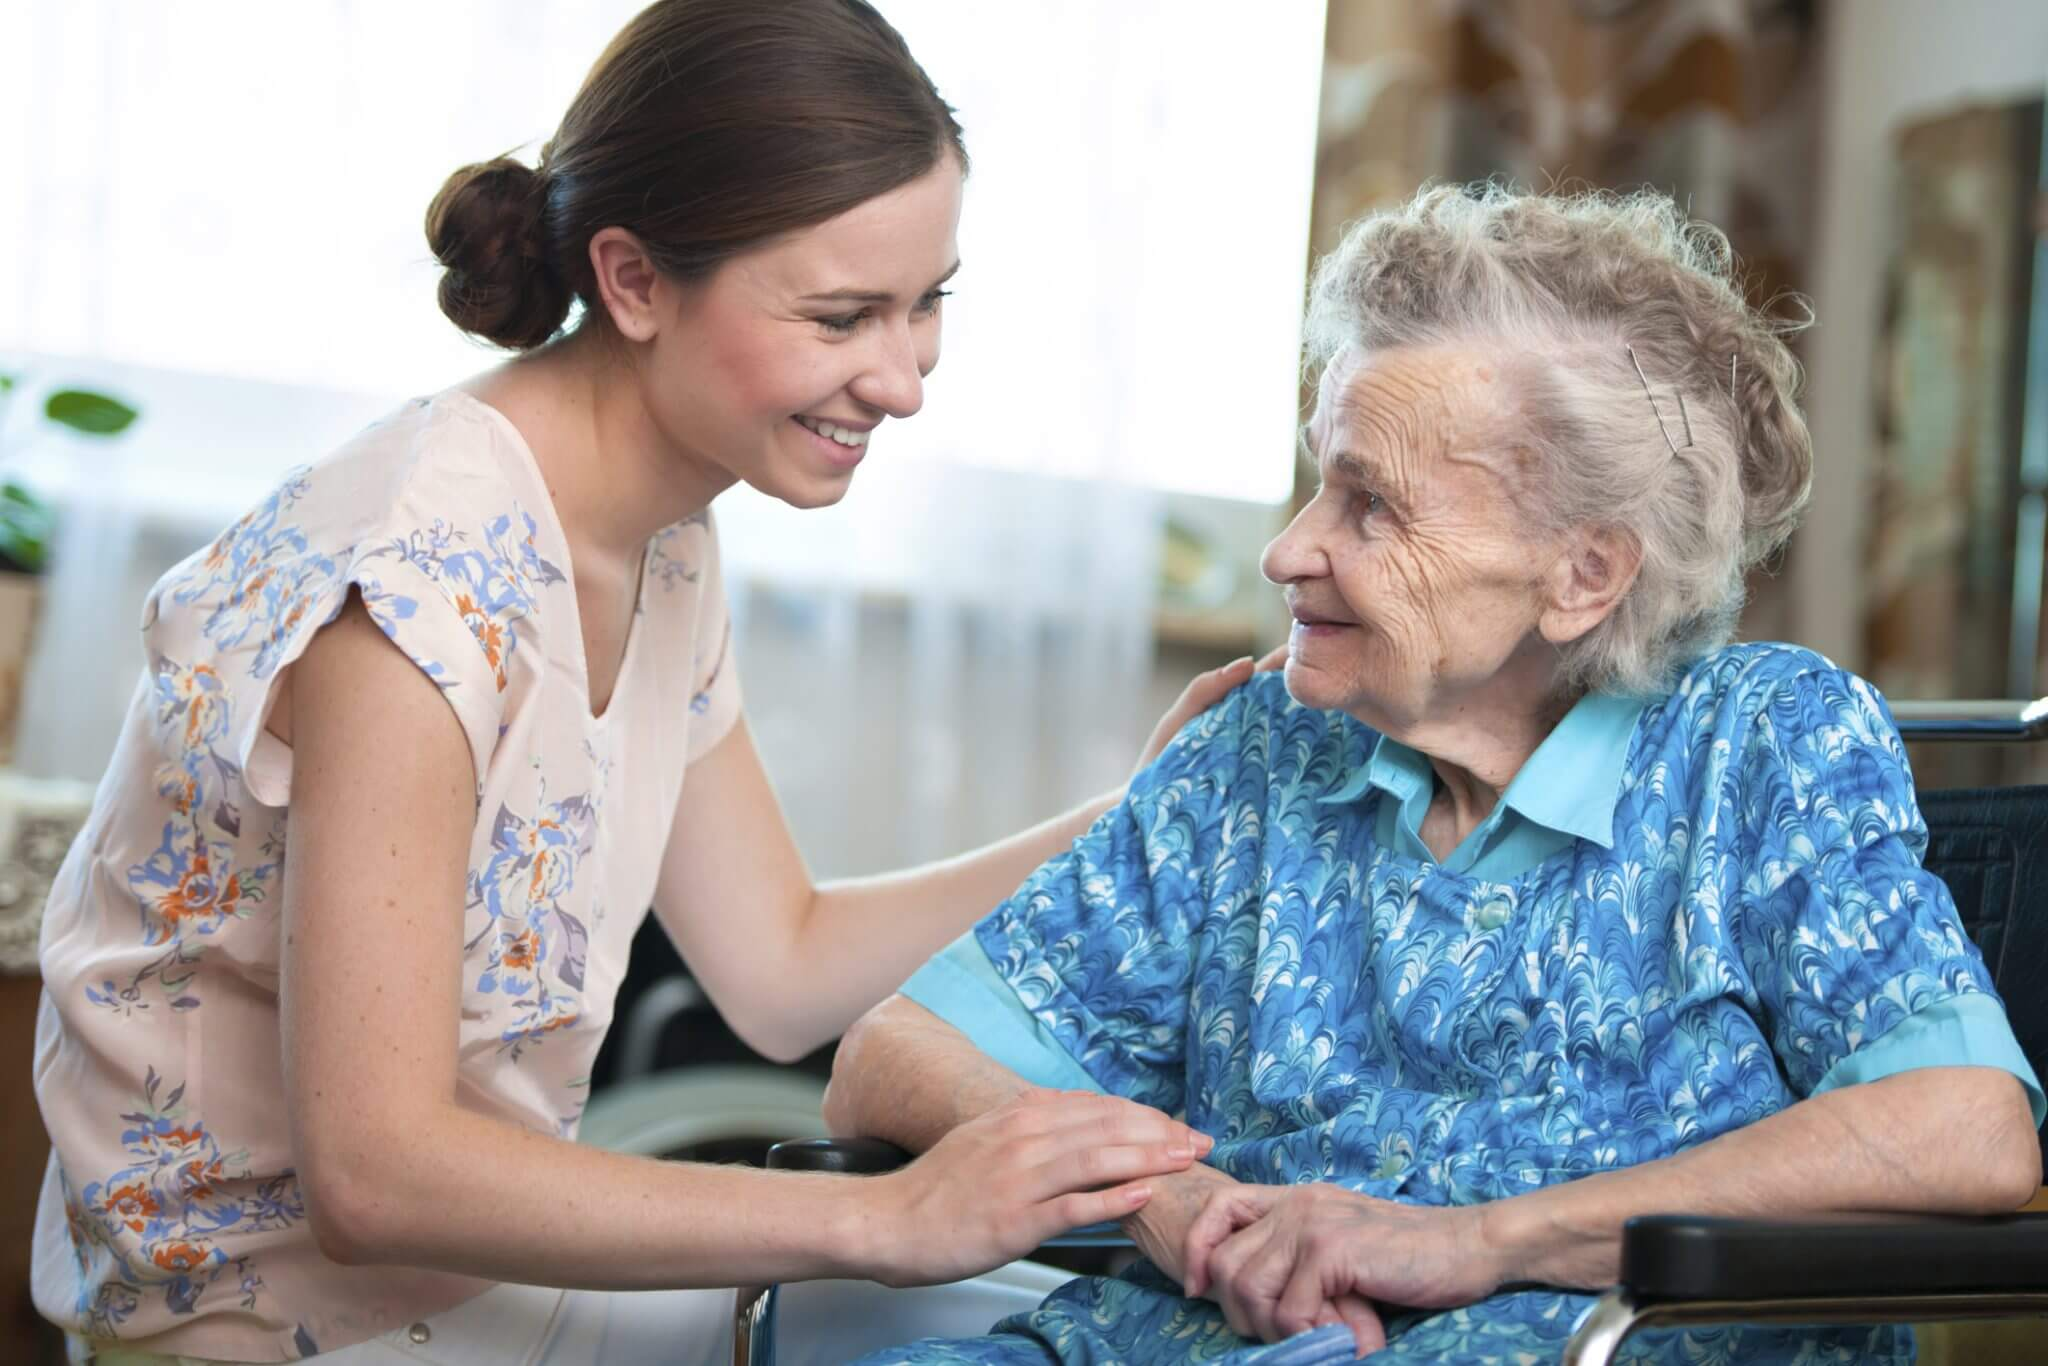 Balancing Act: Finding Your Footing Between Caregiving and Home Life